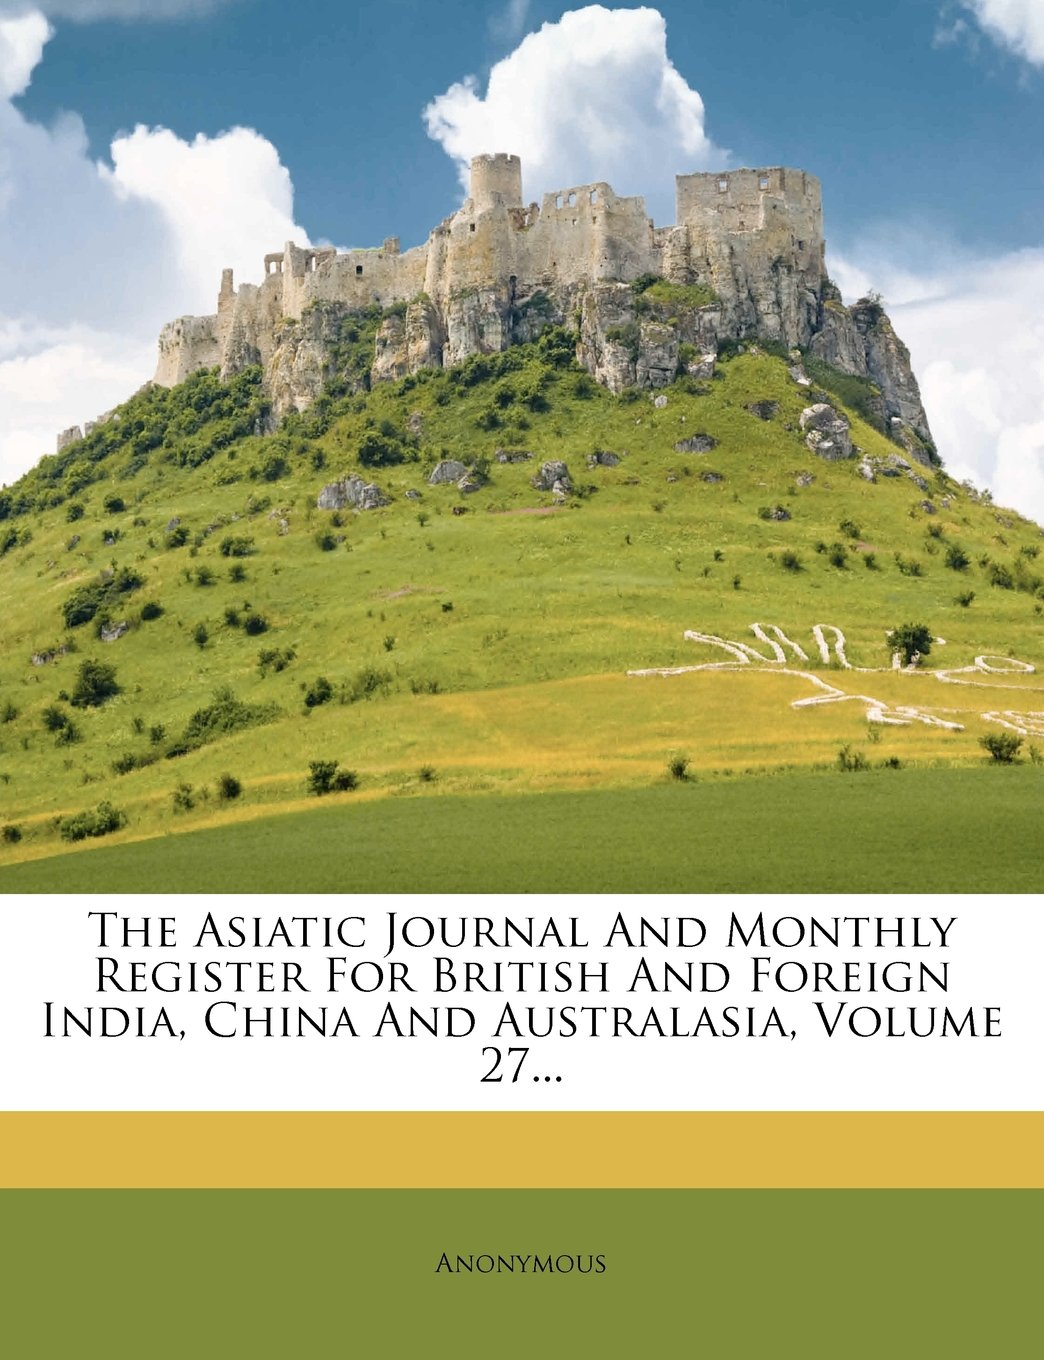 Download The Asiatic Journal And Monthly Register For British And Foreign India, China And Australasia, Volume 27... pdf